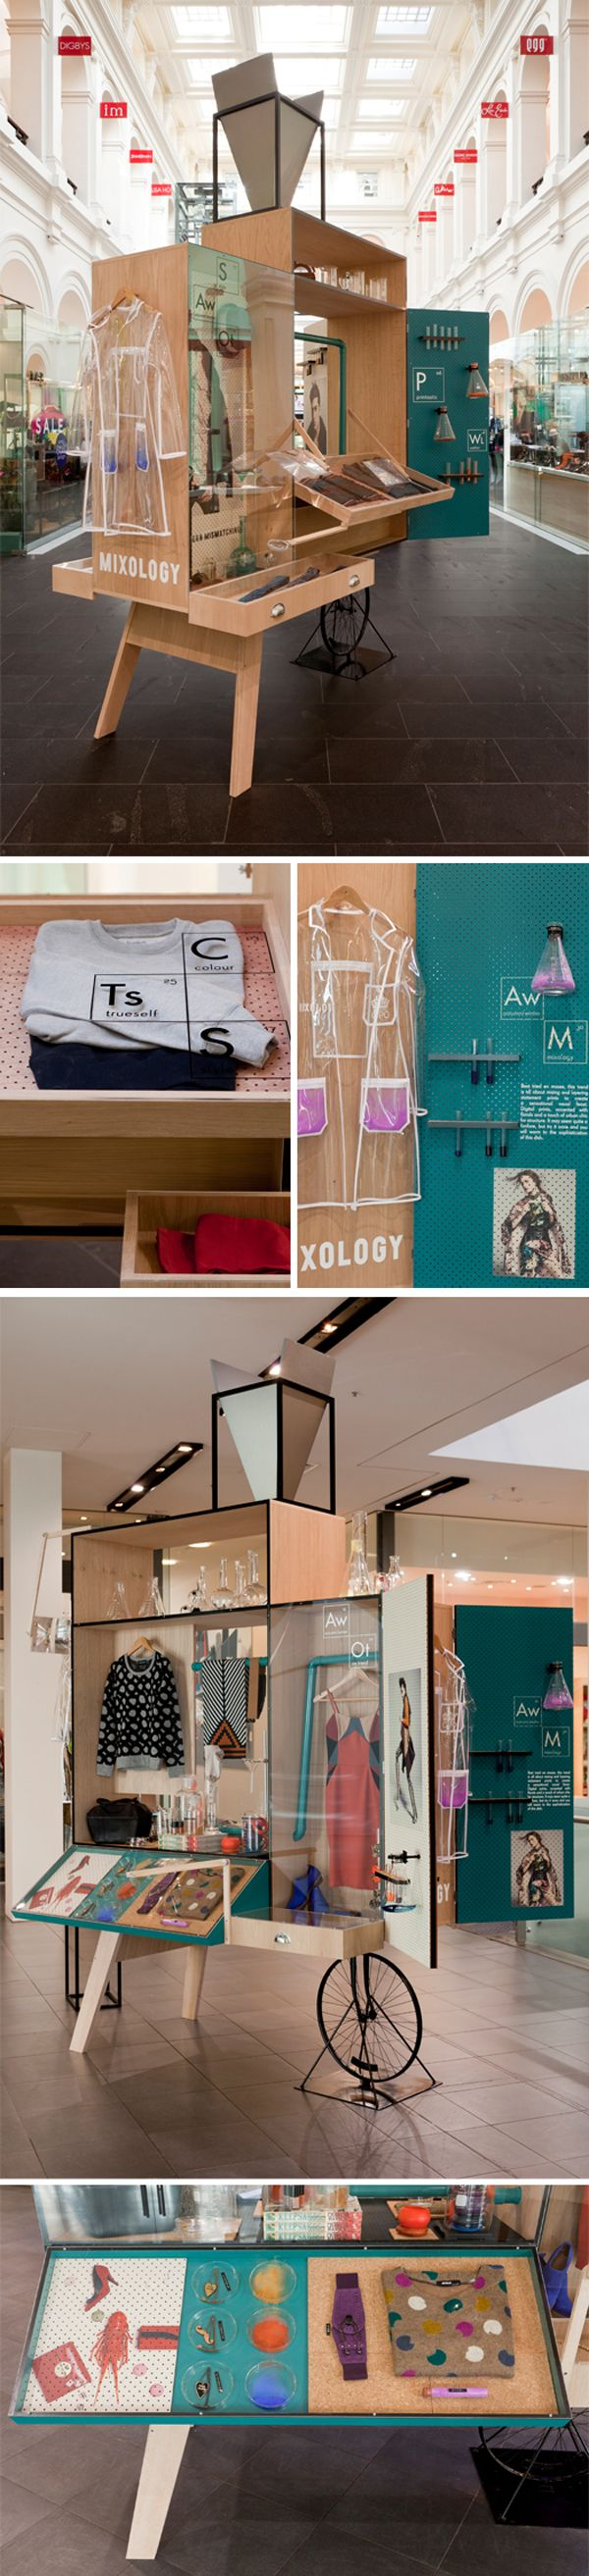 Loss Creative Have Teamed Up With Melbournes Gpo To Create